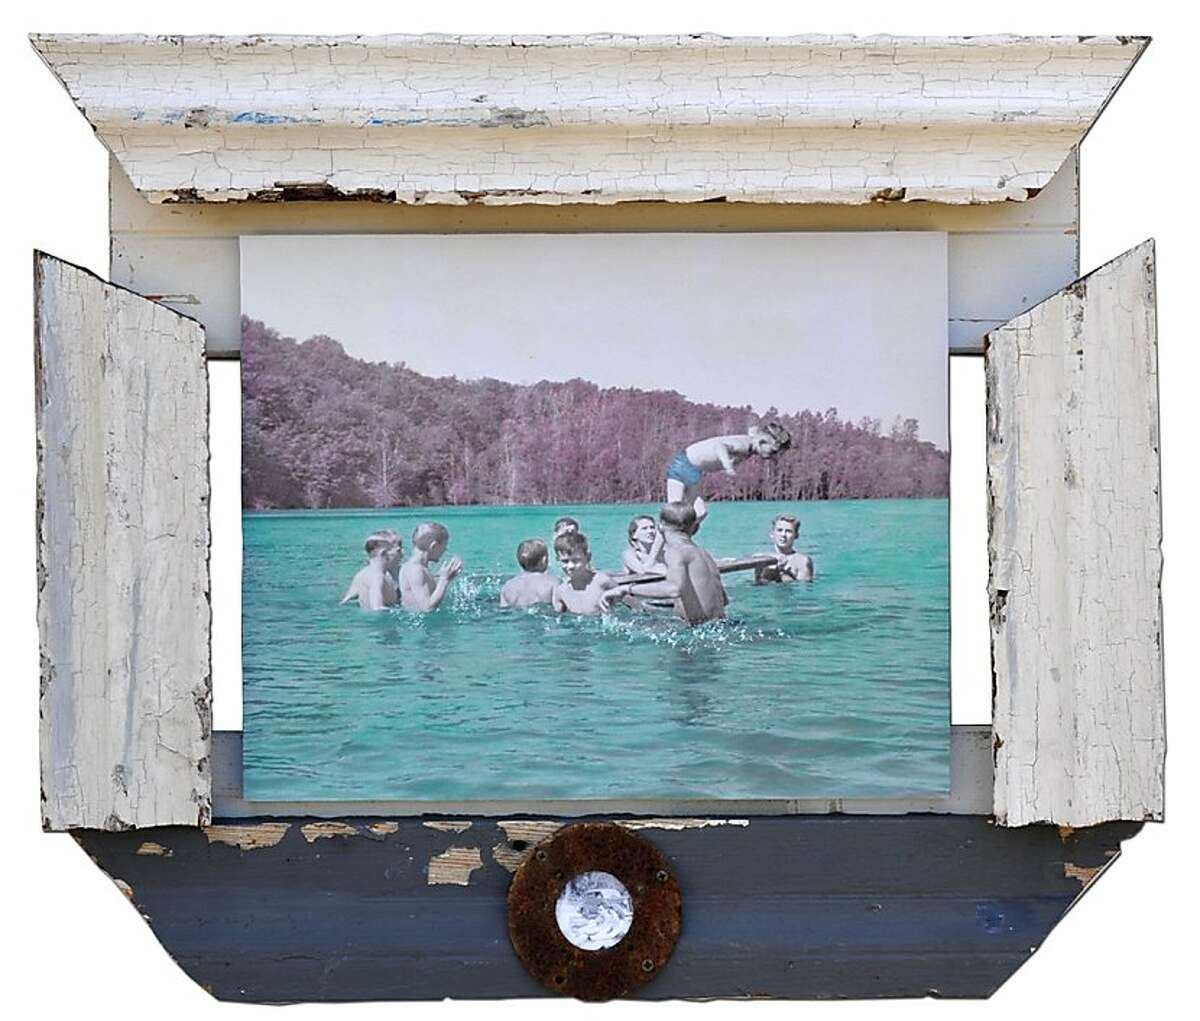 Leslie Morgan revisits our summertime fascination with water in painted vintage photos framed with reclaimed materials.